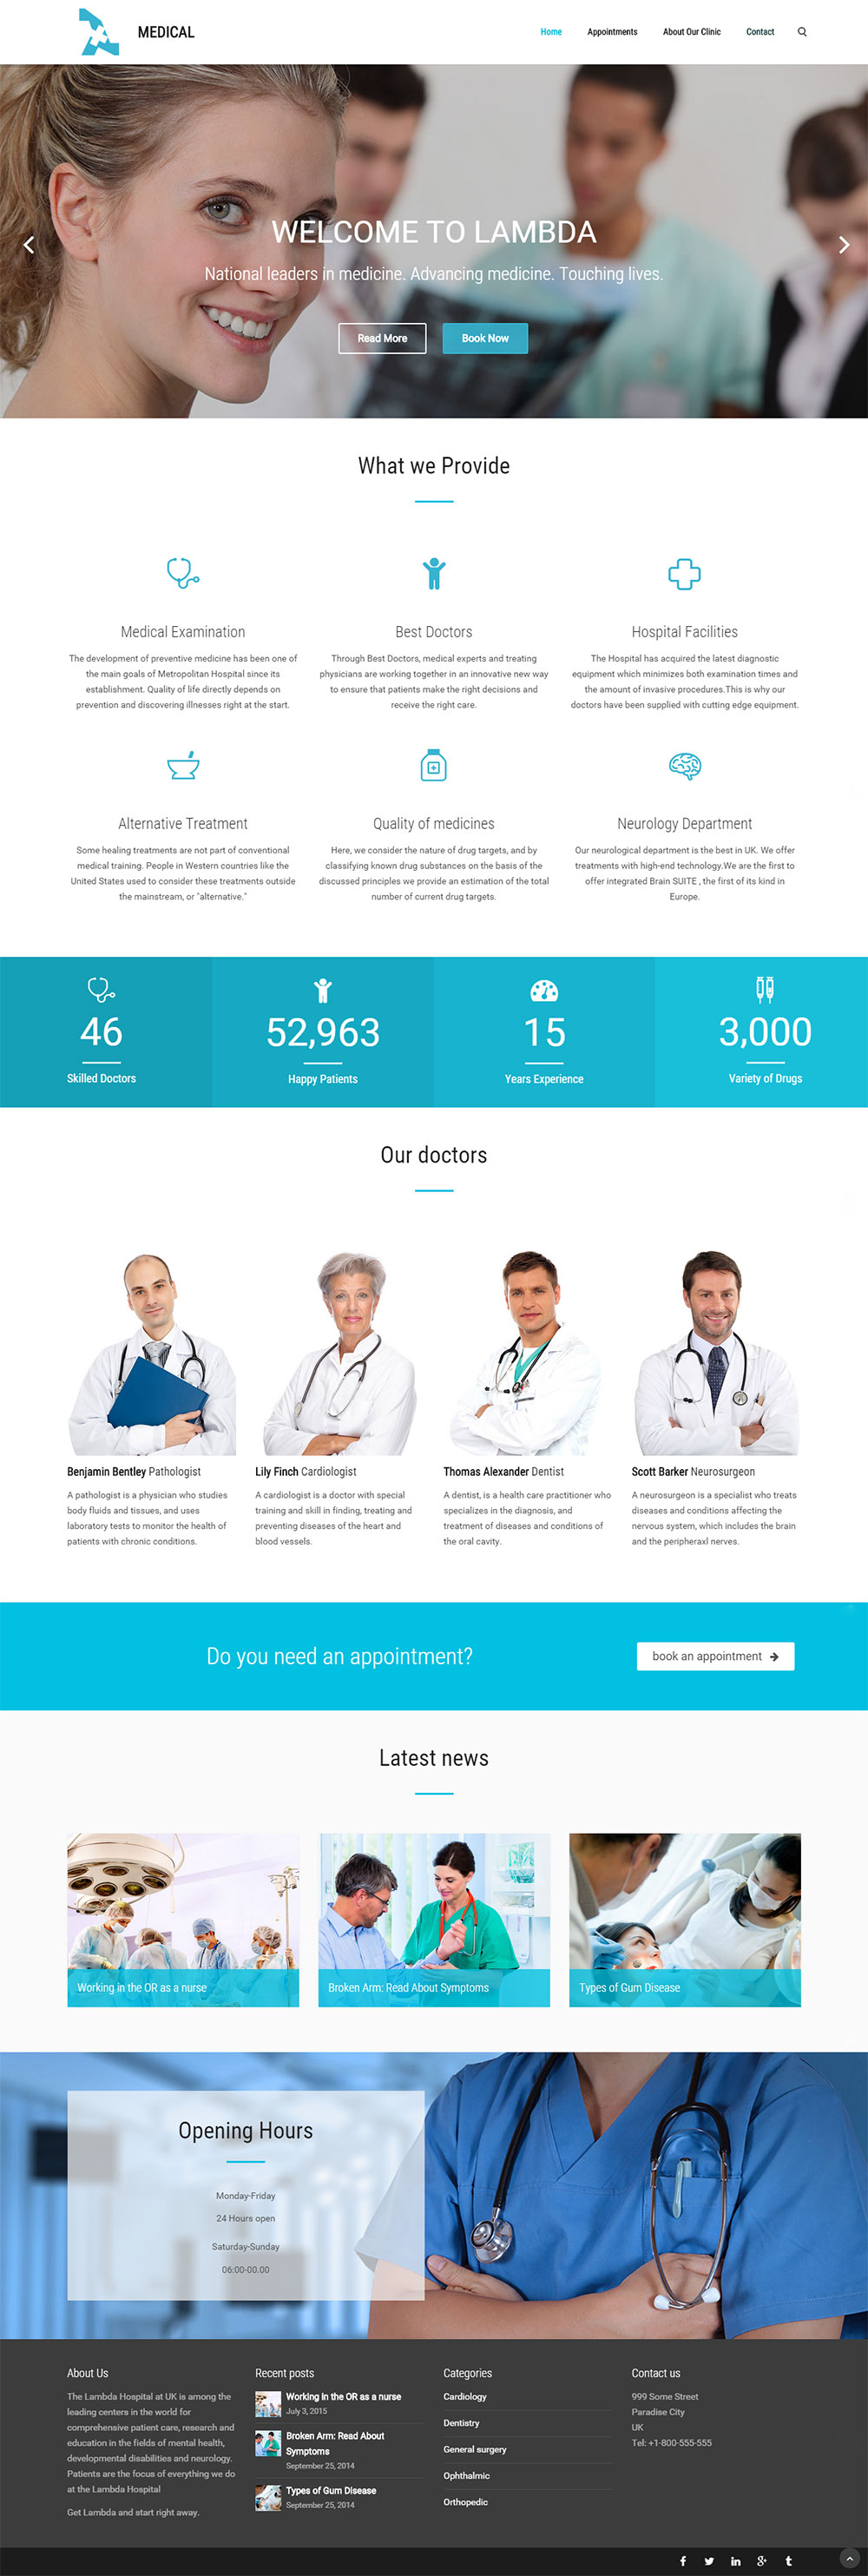 Medical---Just-another-Oxygenna-WP-Dev-site